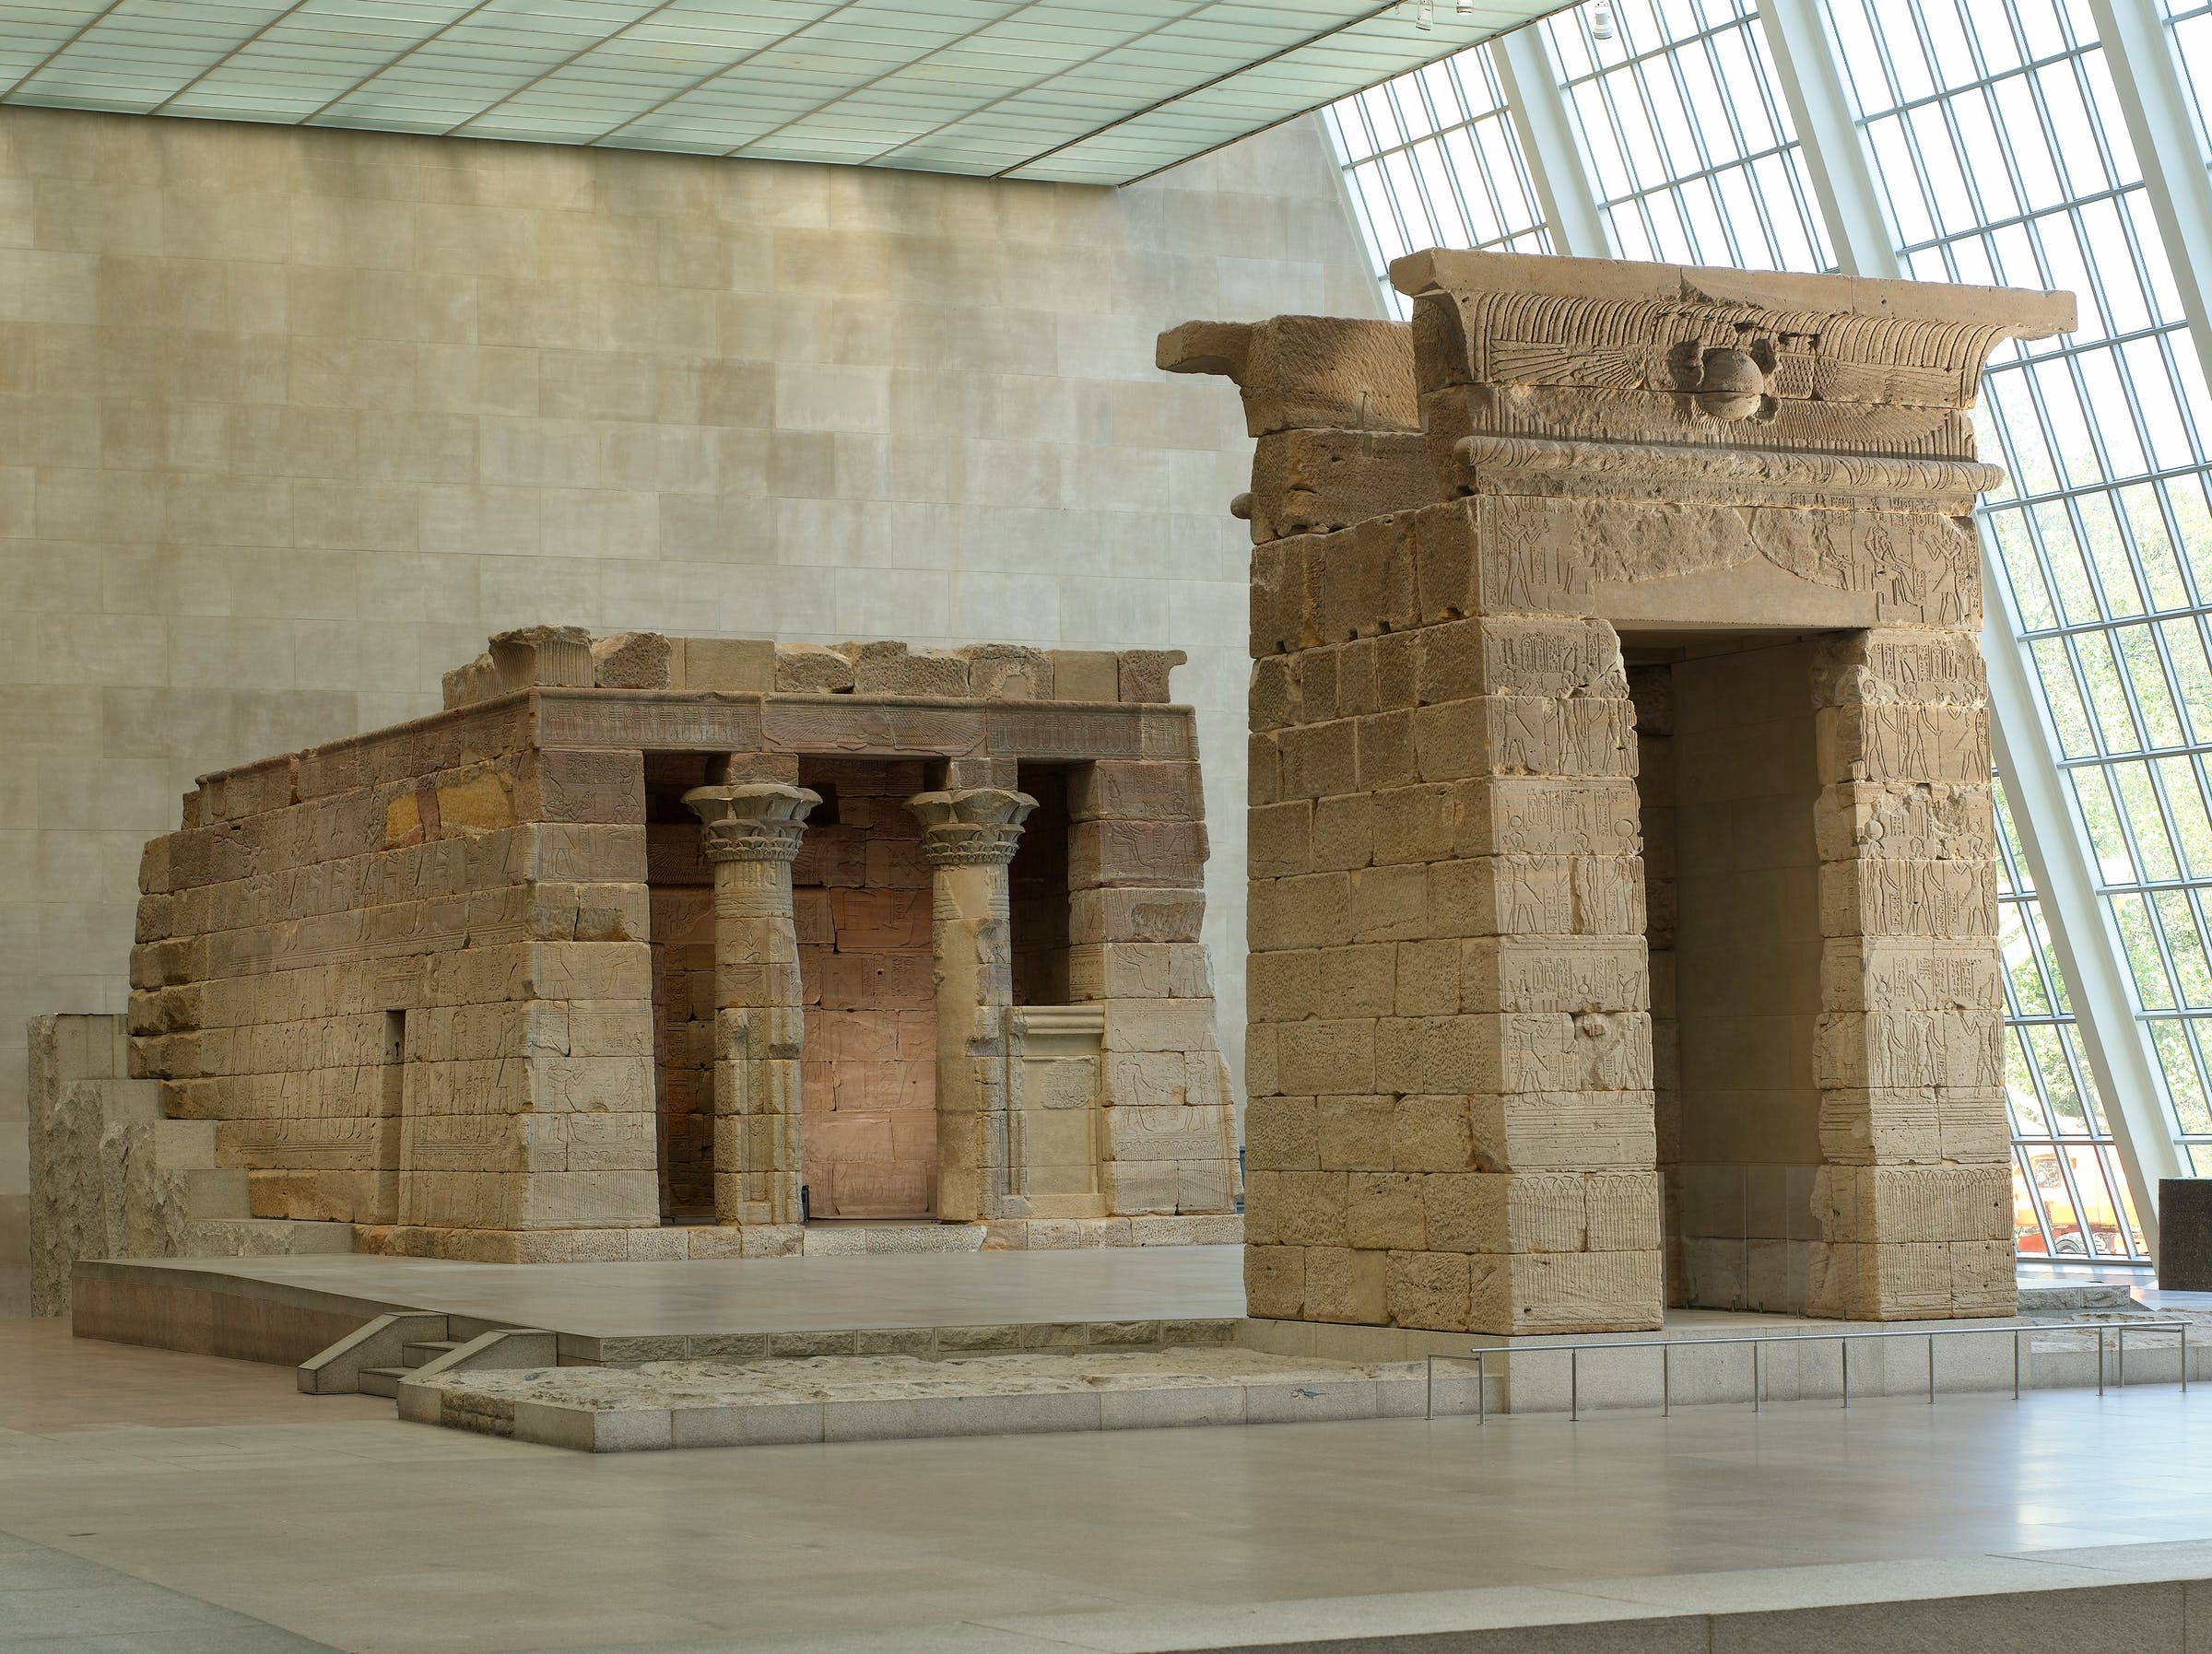 Temple of dendur, met, museum